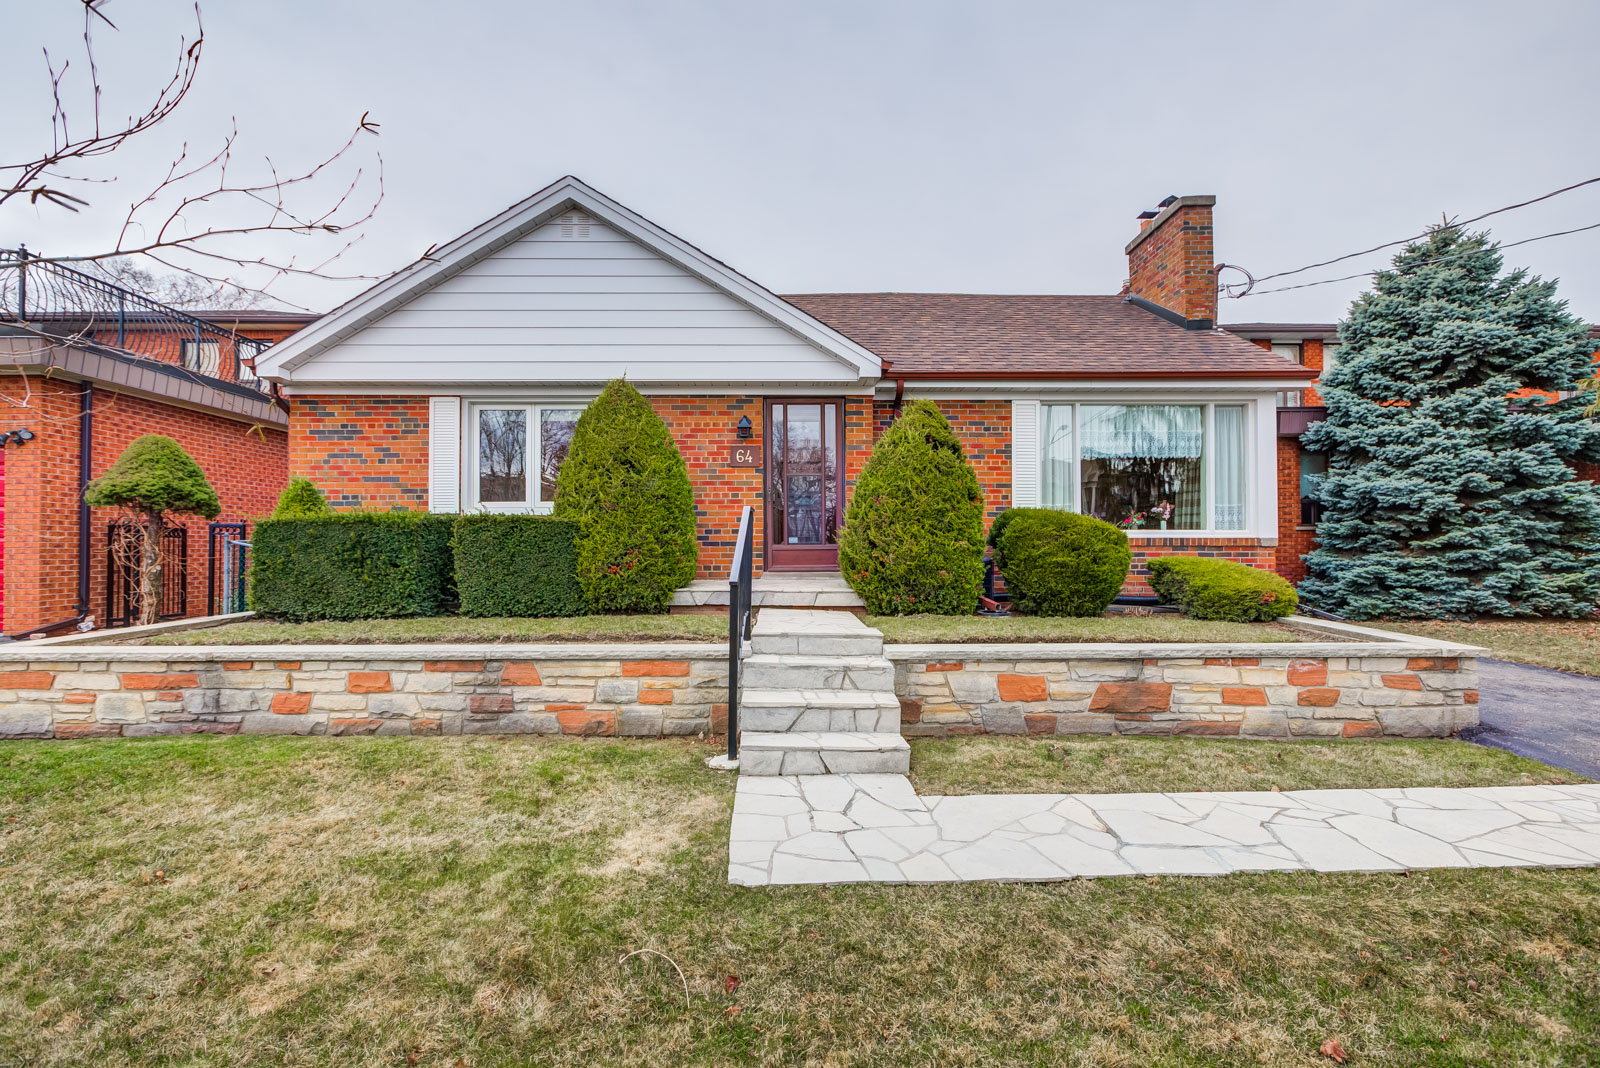 64 Harlow Crescsent All Brick Bungalow For Sale The